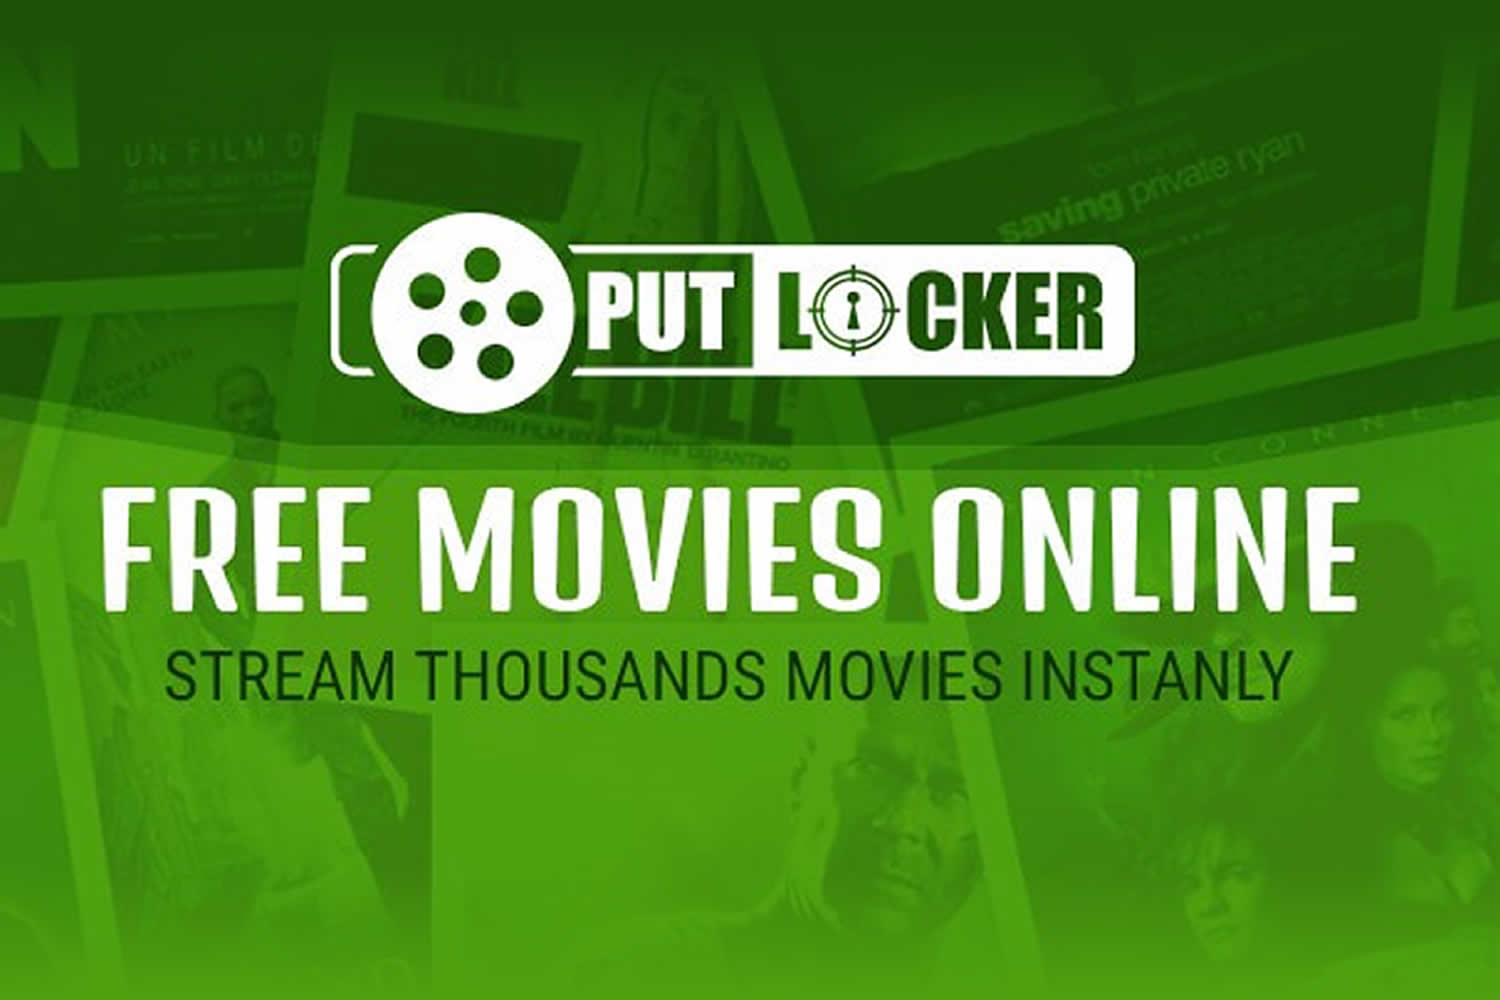 Watch Dick Turpin Putlocker Movies